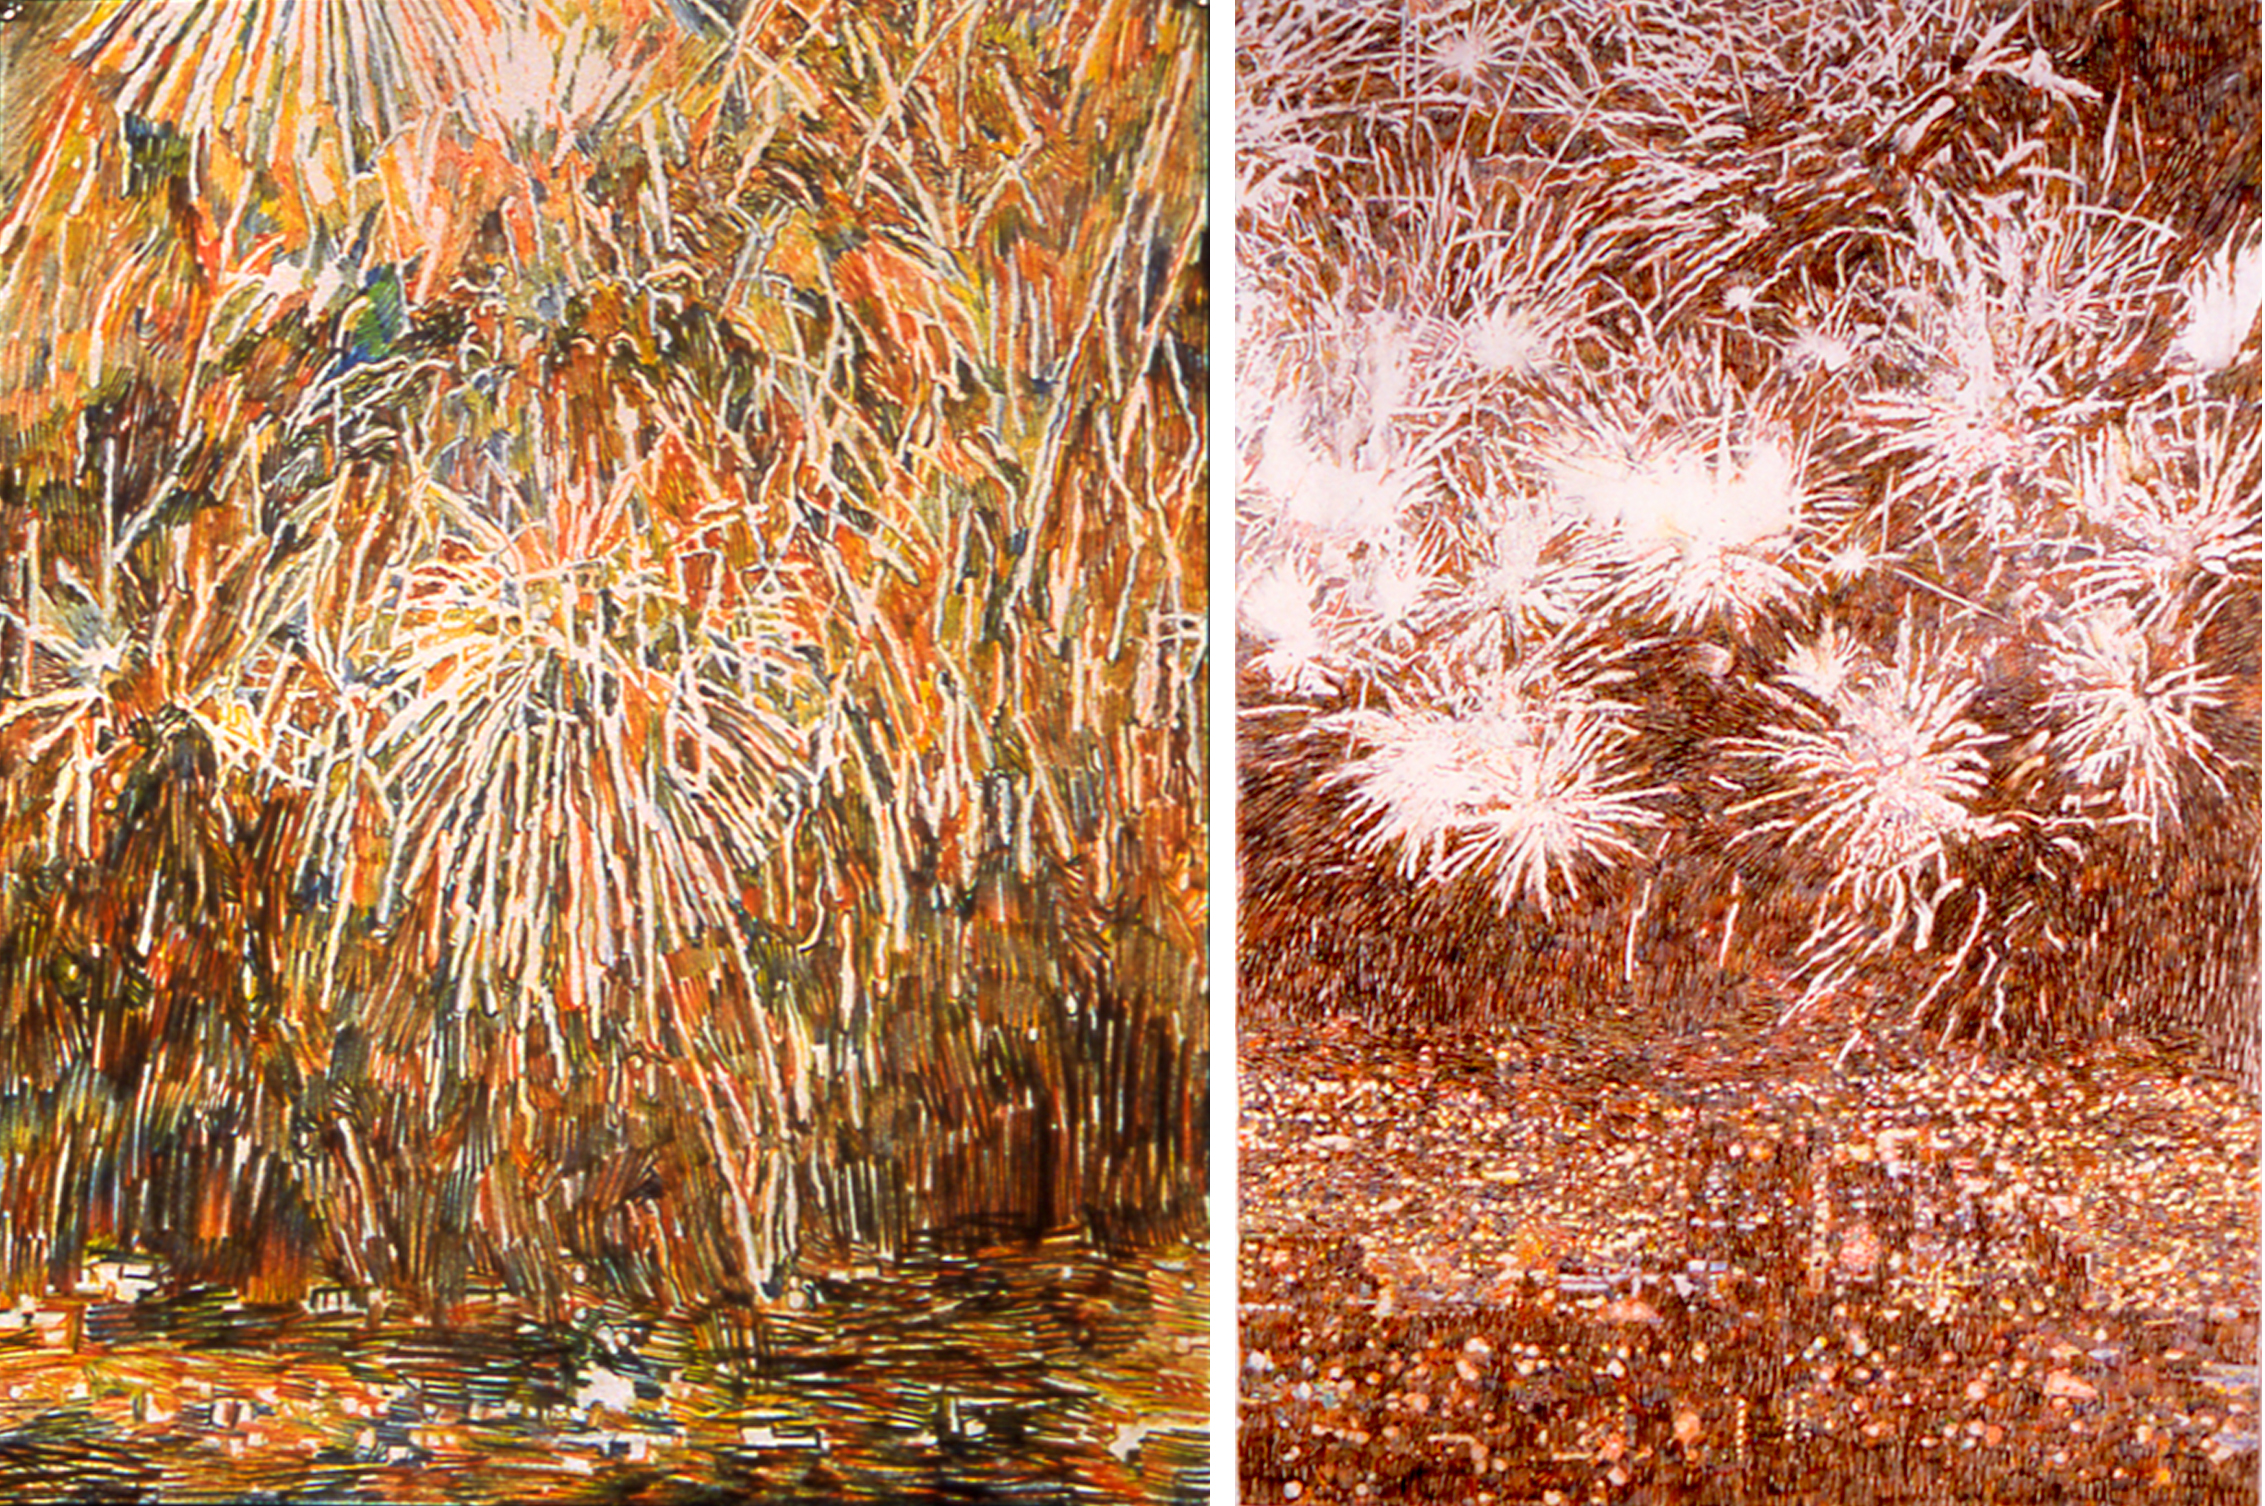 Fireworks 1, Pyrotechnics (Petardes), 2003, Quattro Colored Pencil on Paper, 59 3/4 x 40 7/8 inches, Permanent Collection of the Yale Gallery of Art